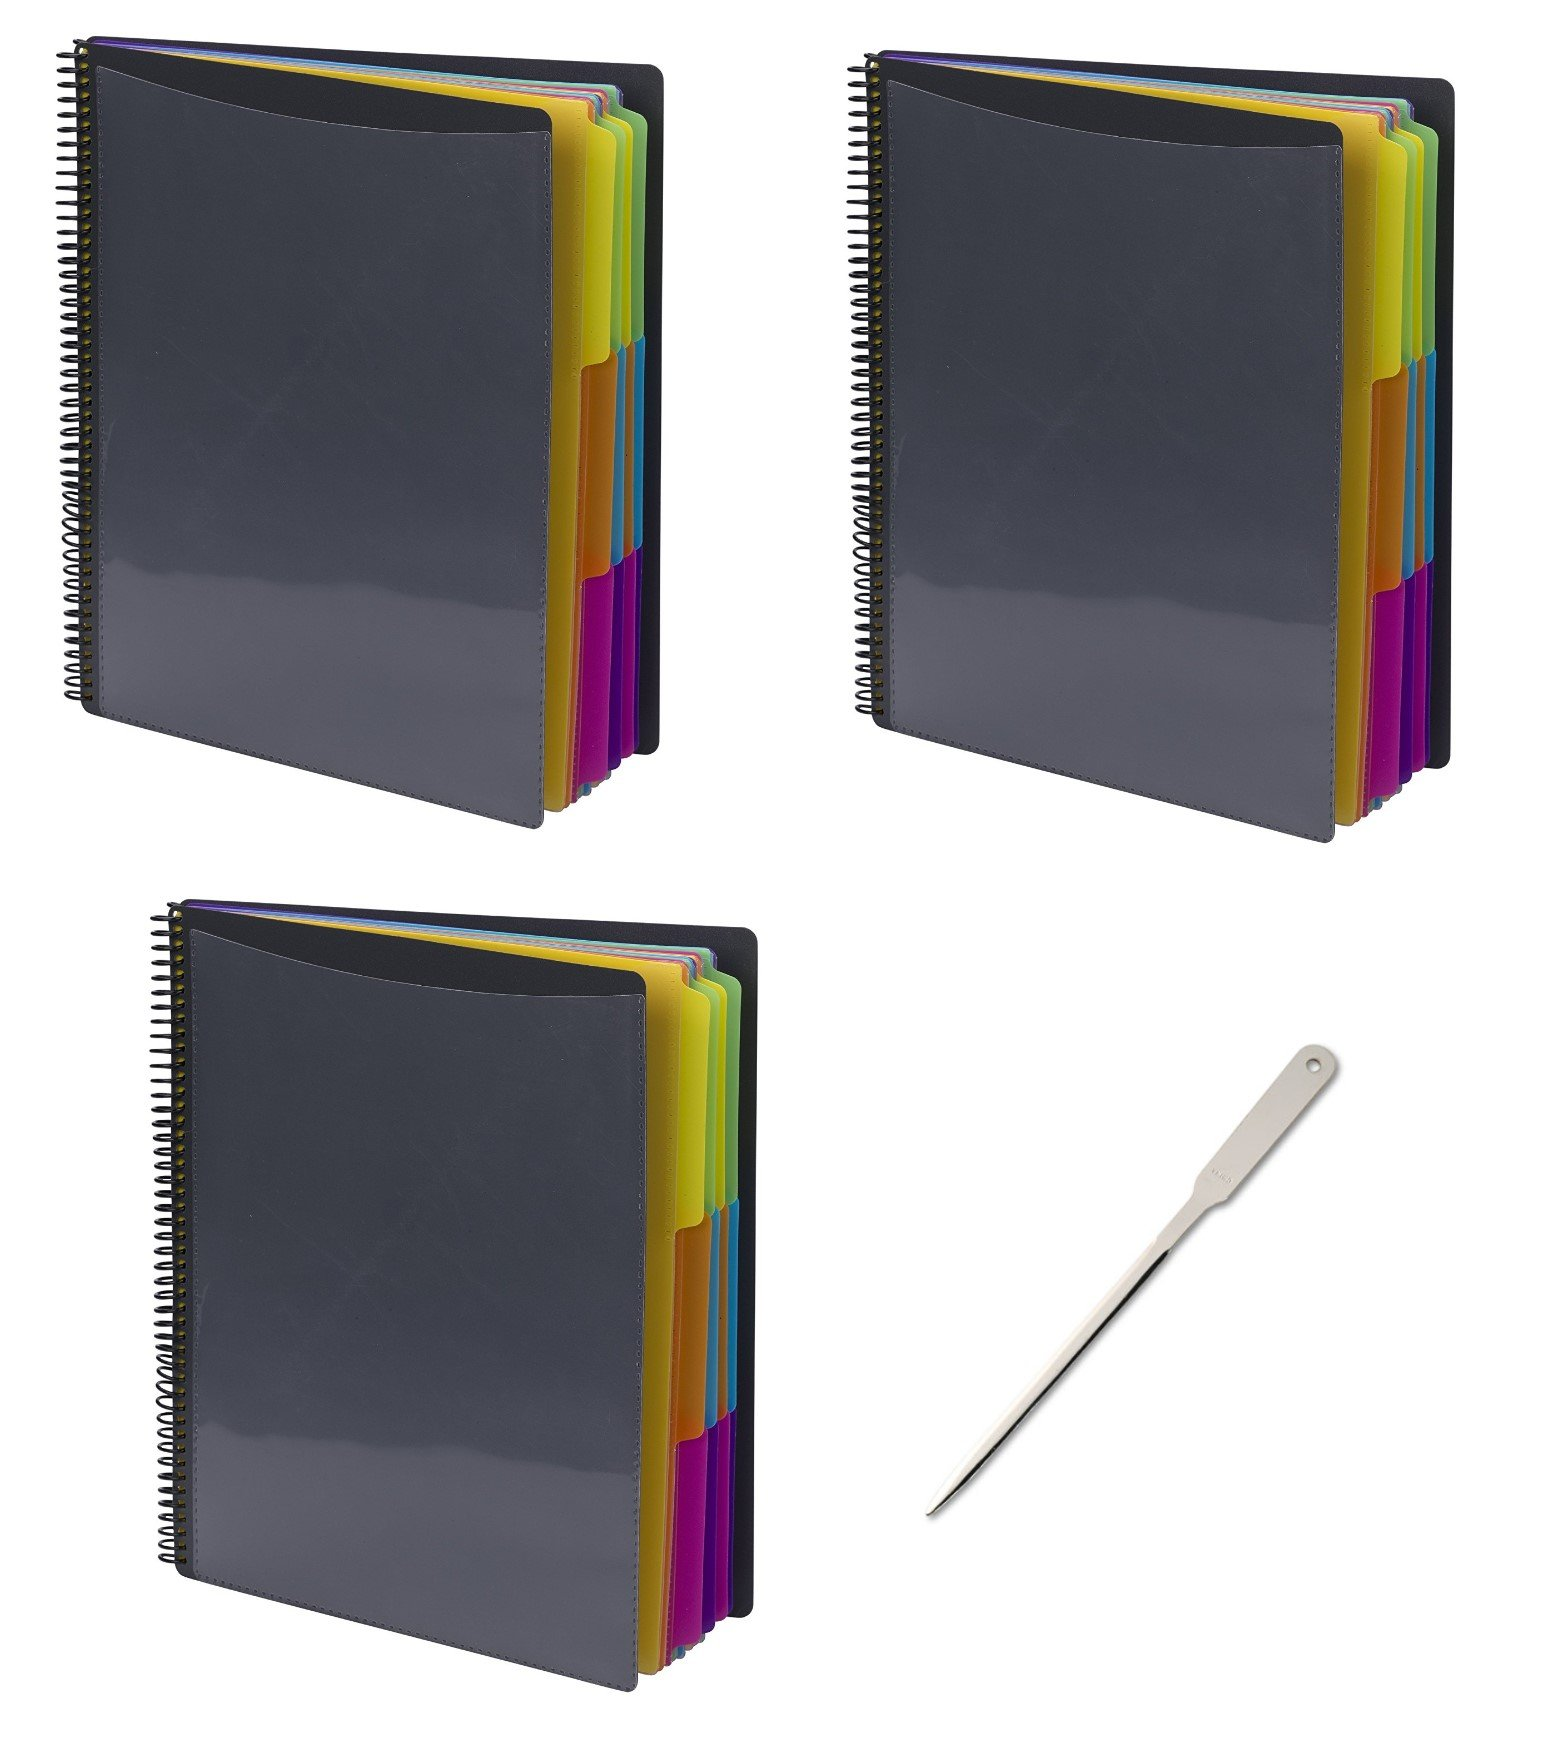 Smead 24 Pocket Poly Project Organizer, Letter Size, 1/3-Cut tab, Gray with Bright Colors, 3 Pack (89206) - Bundle Includes a Letter Opener by Smead (Image #1)